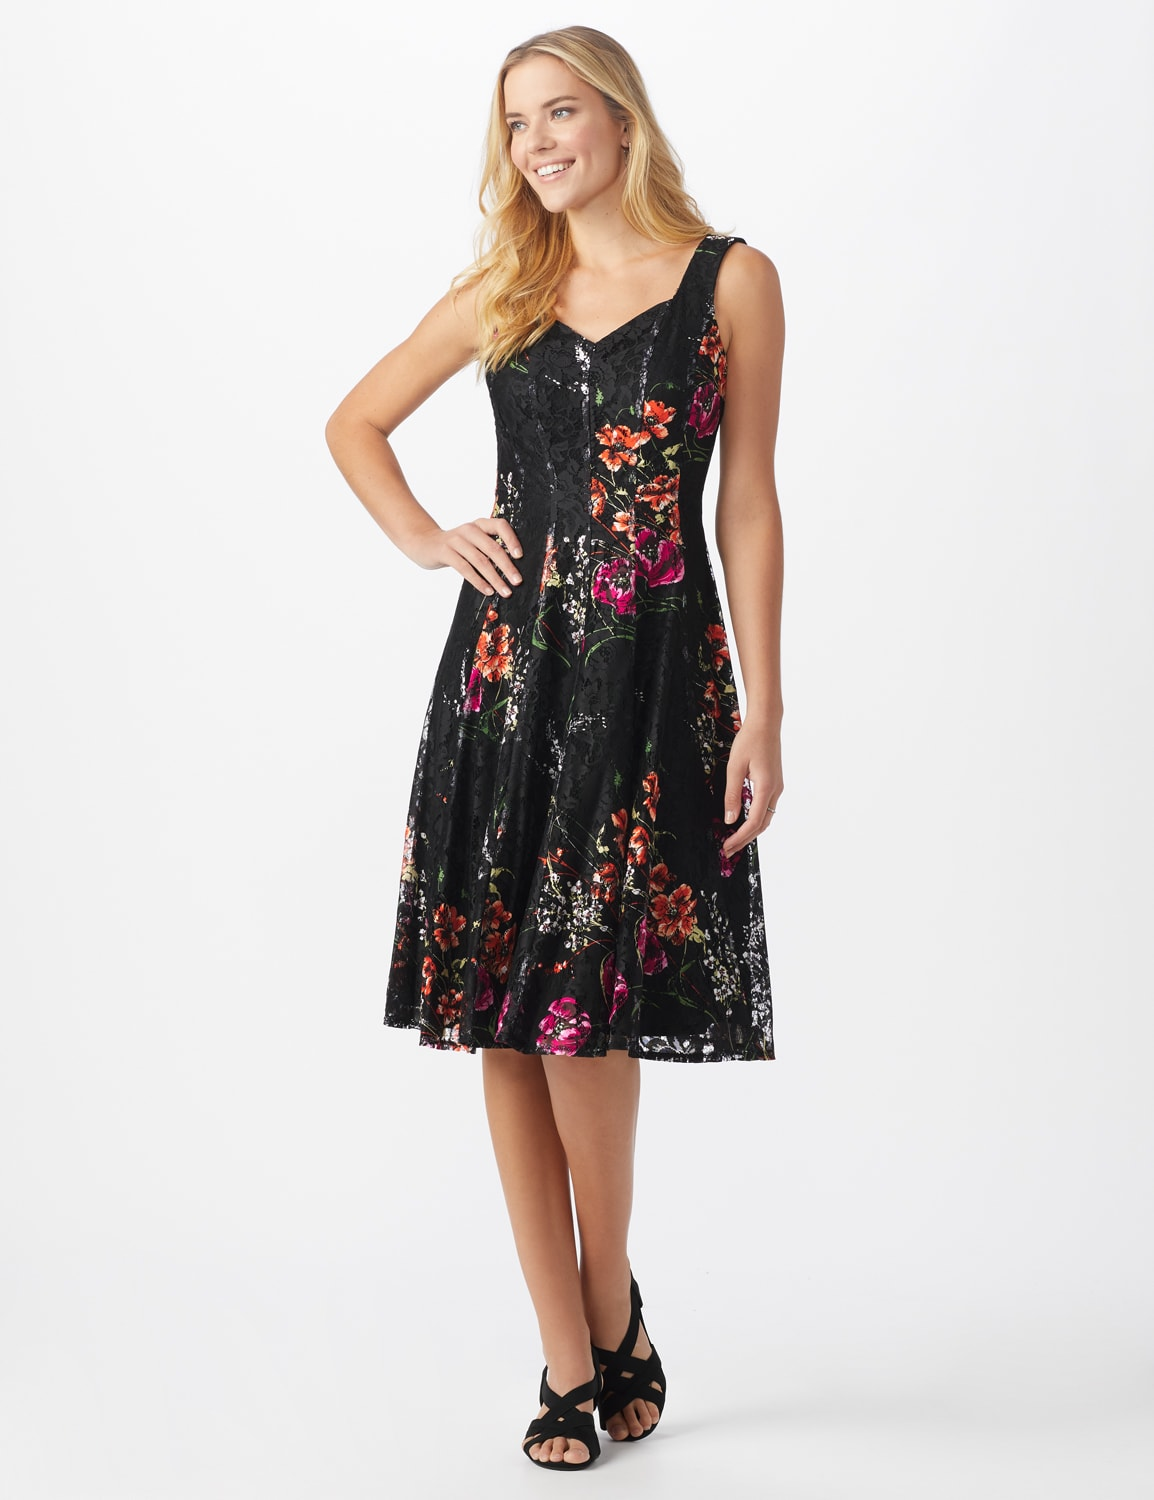 Floral Lace Fit and Flare Dress - Misses - Black/tangerine - Front